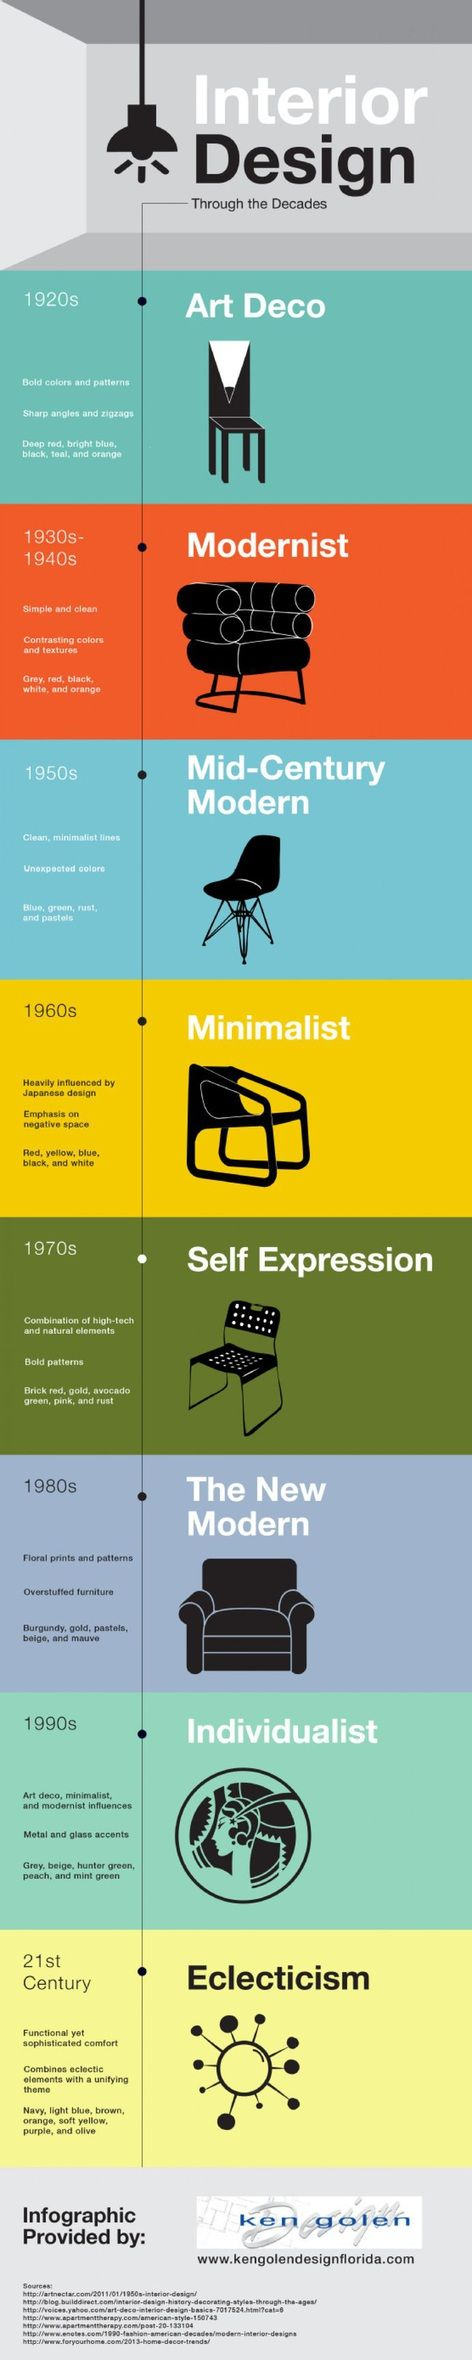 Interior Design through the Decades Infographic | History ...